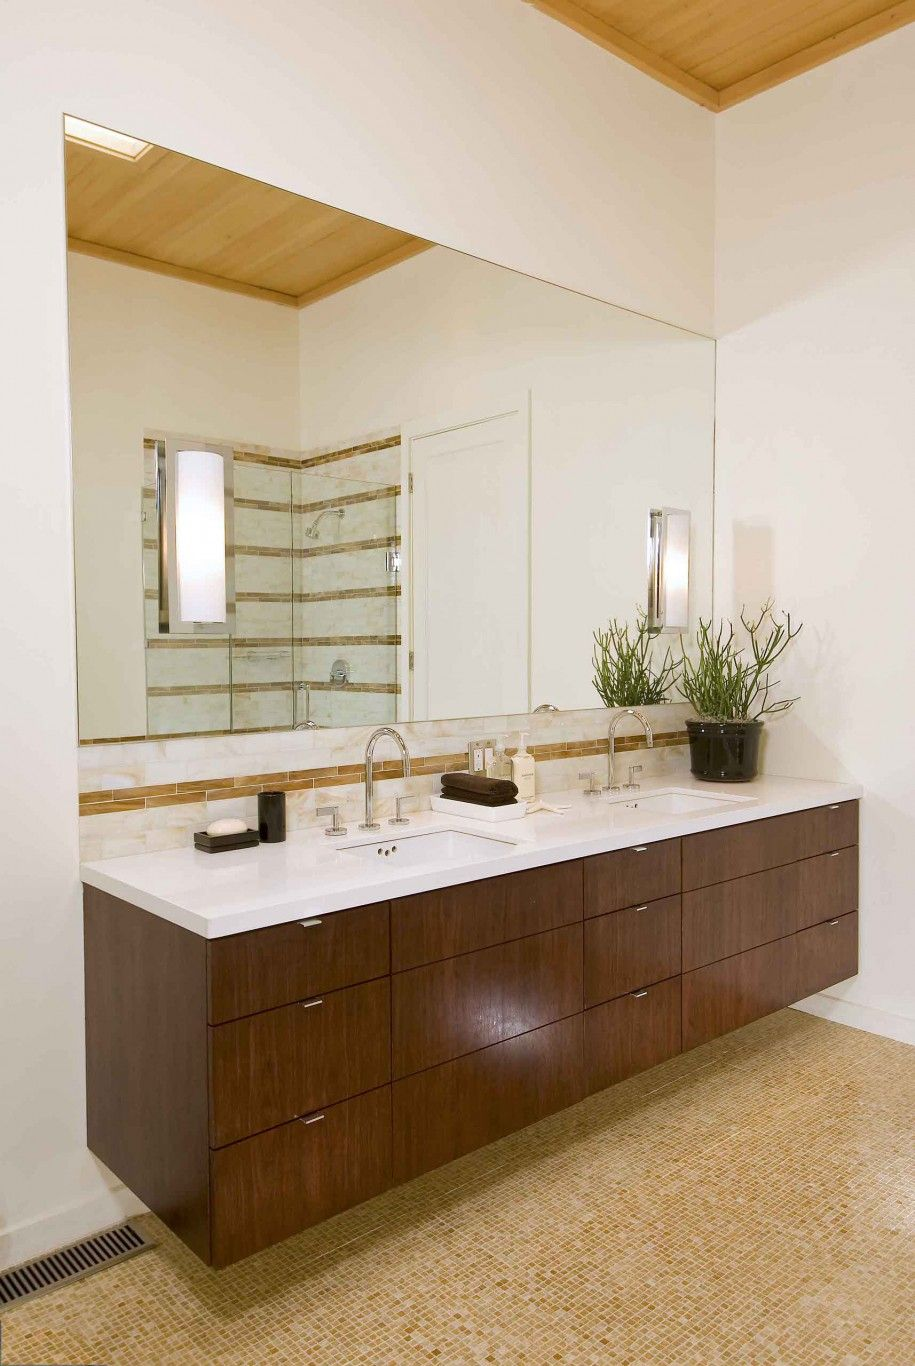 Bathroom vanity san francisco - Kitchen And Baths Contemporary Bathroom San Francisco Artistic Designs For Living Tineke Triggs